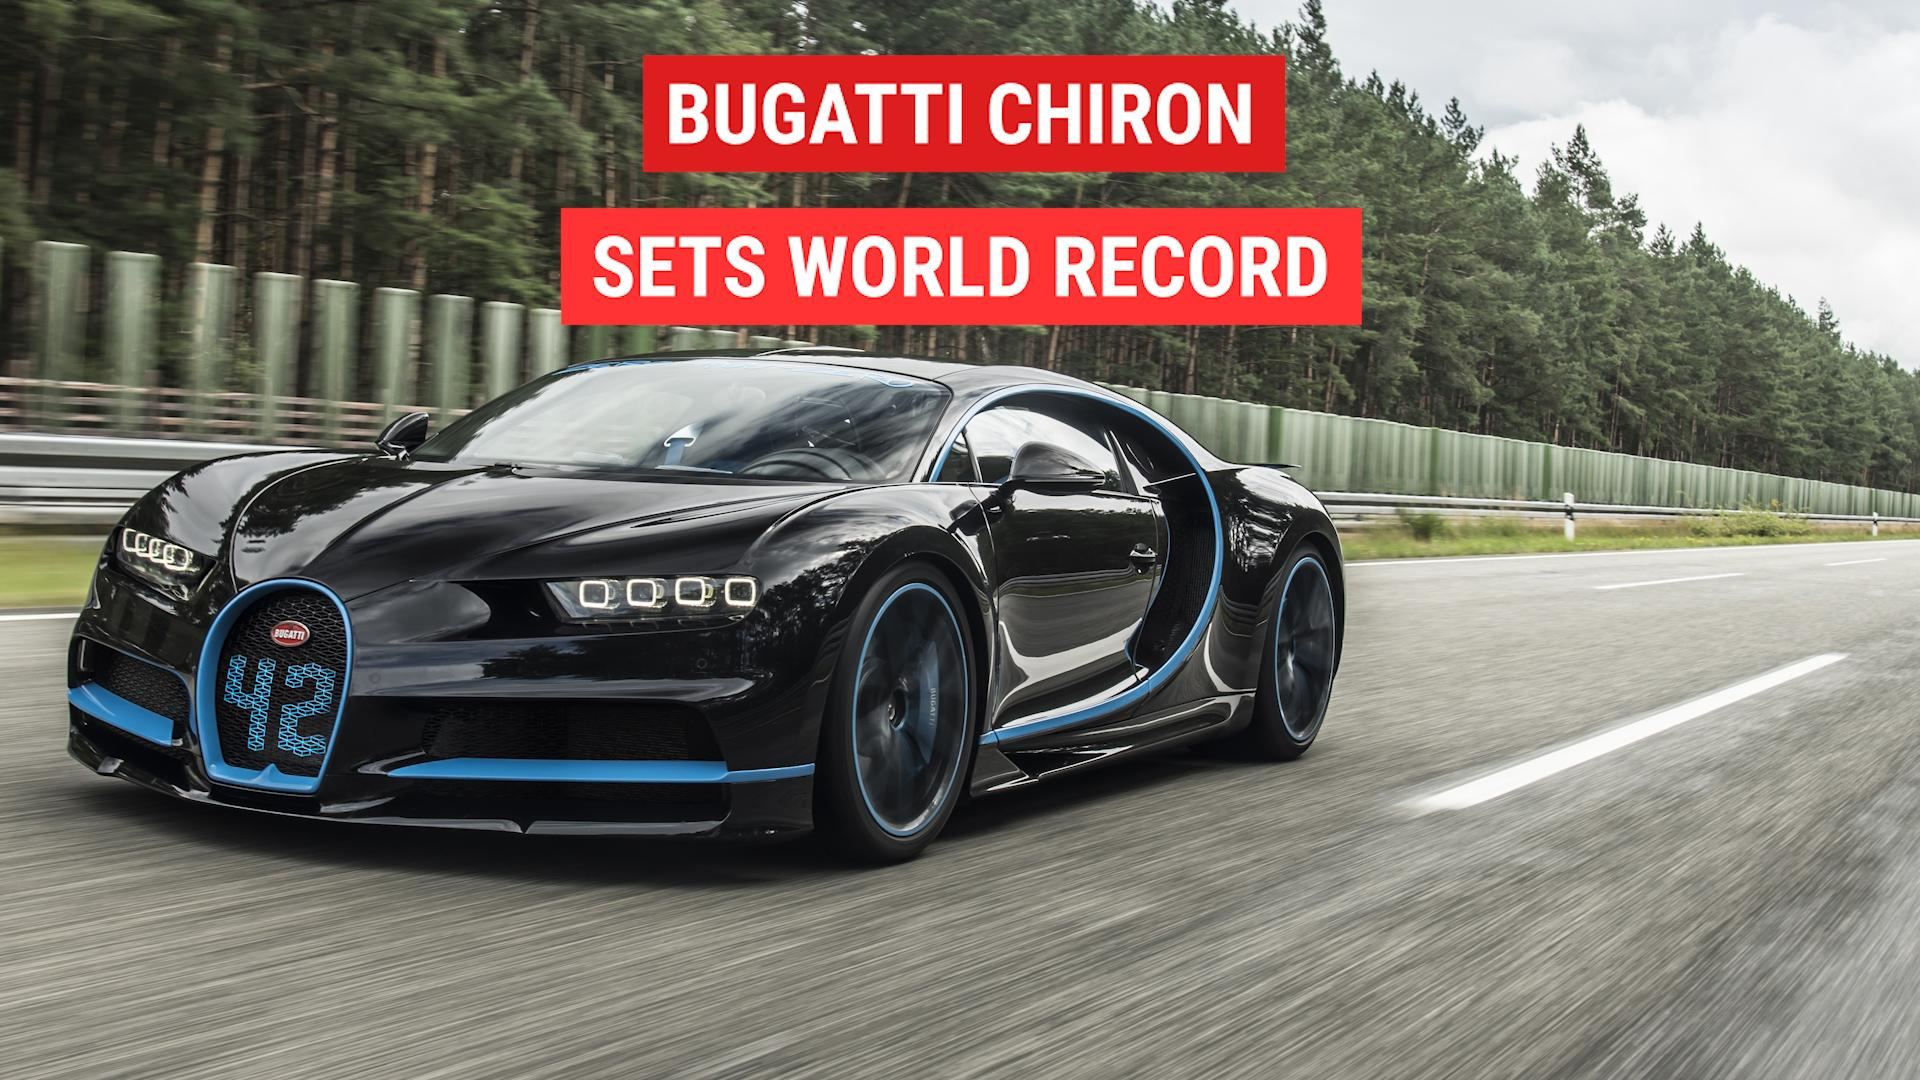 59b6d44d2a30cb71b860afae_o_U_v1 Remarkable New Bugatti Veyron 2017 Price Cars Trend